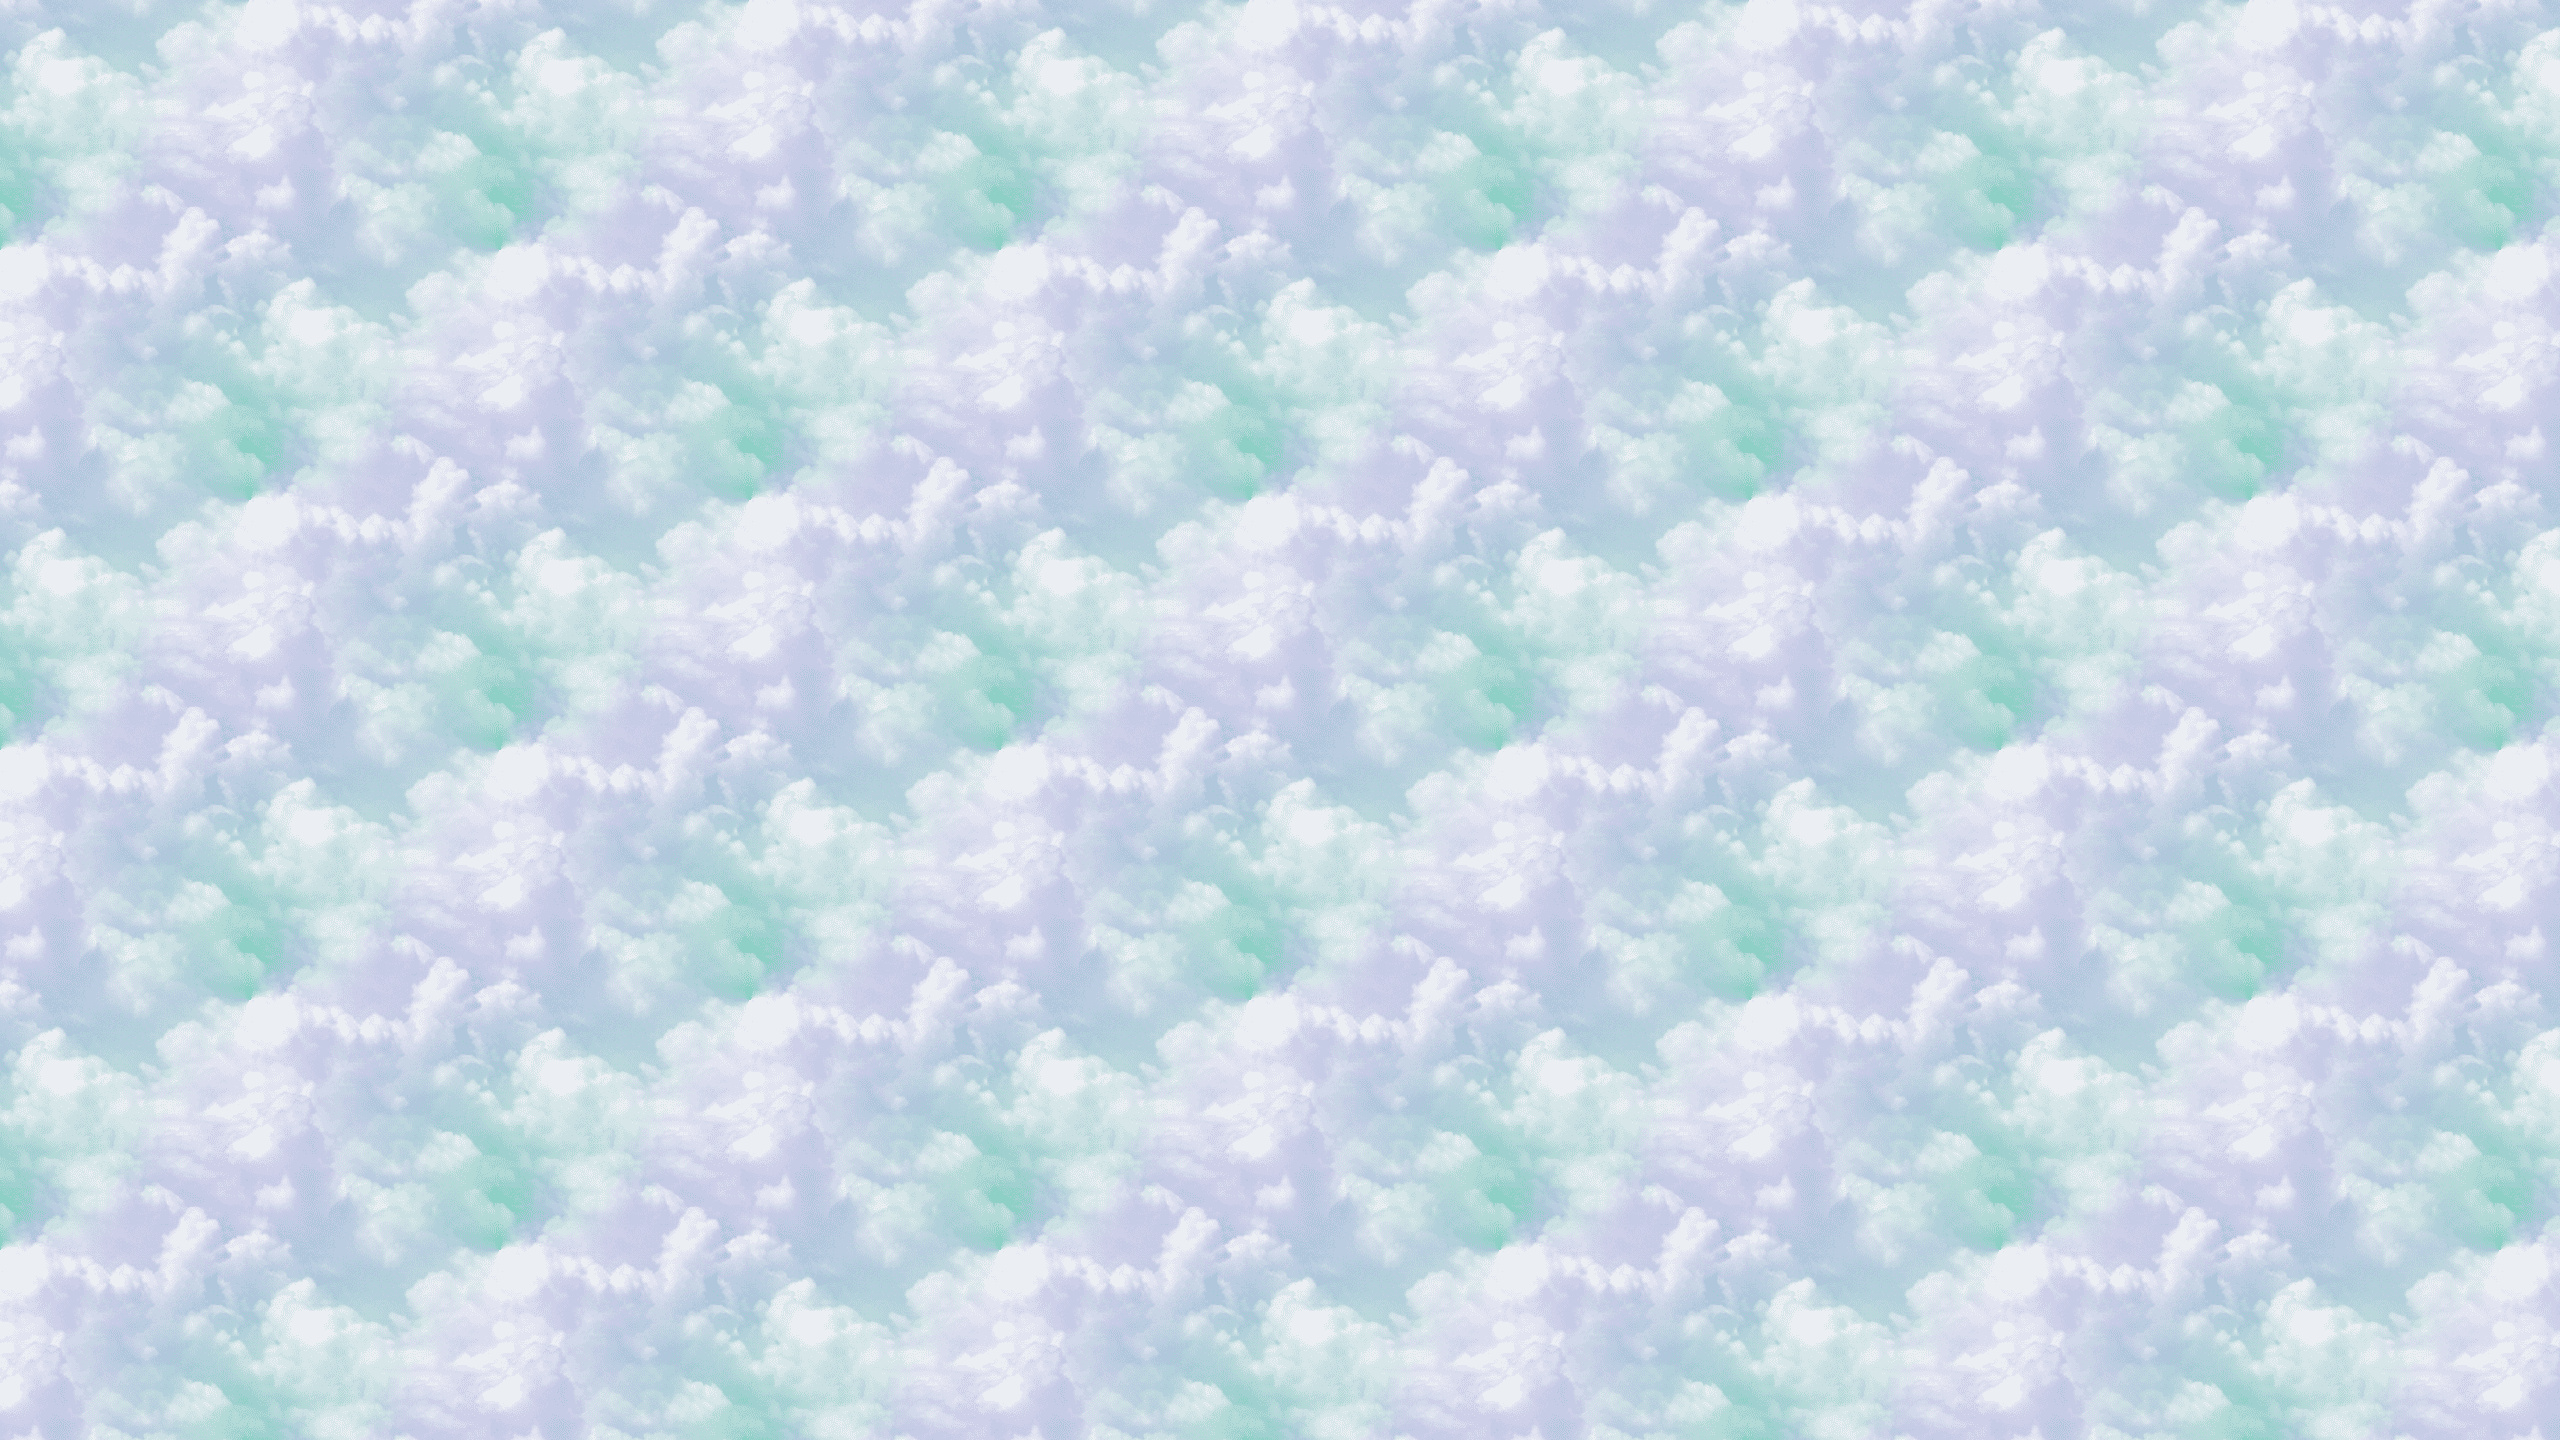 Free Download This Pastel Clouds Desktop Wallpaper Is Easy Just Save The Wallpaper 2560x1440 For Your Desktop Mobile Tablet Explore 76 Pastel Wallpaper Pastel Wallpaper Tumblr Pastel Rainbow Wallpaper